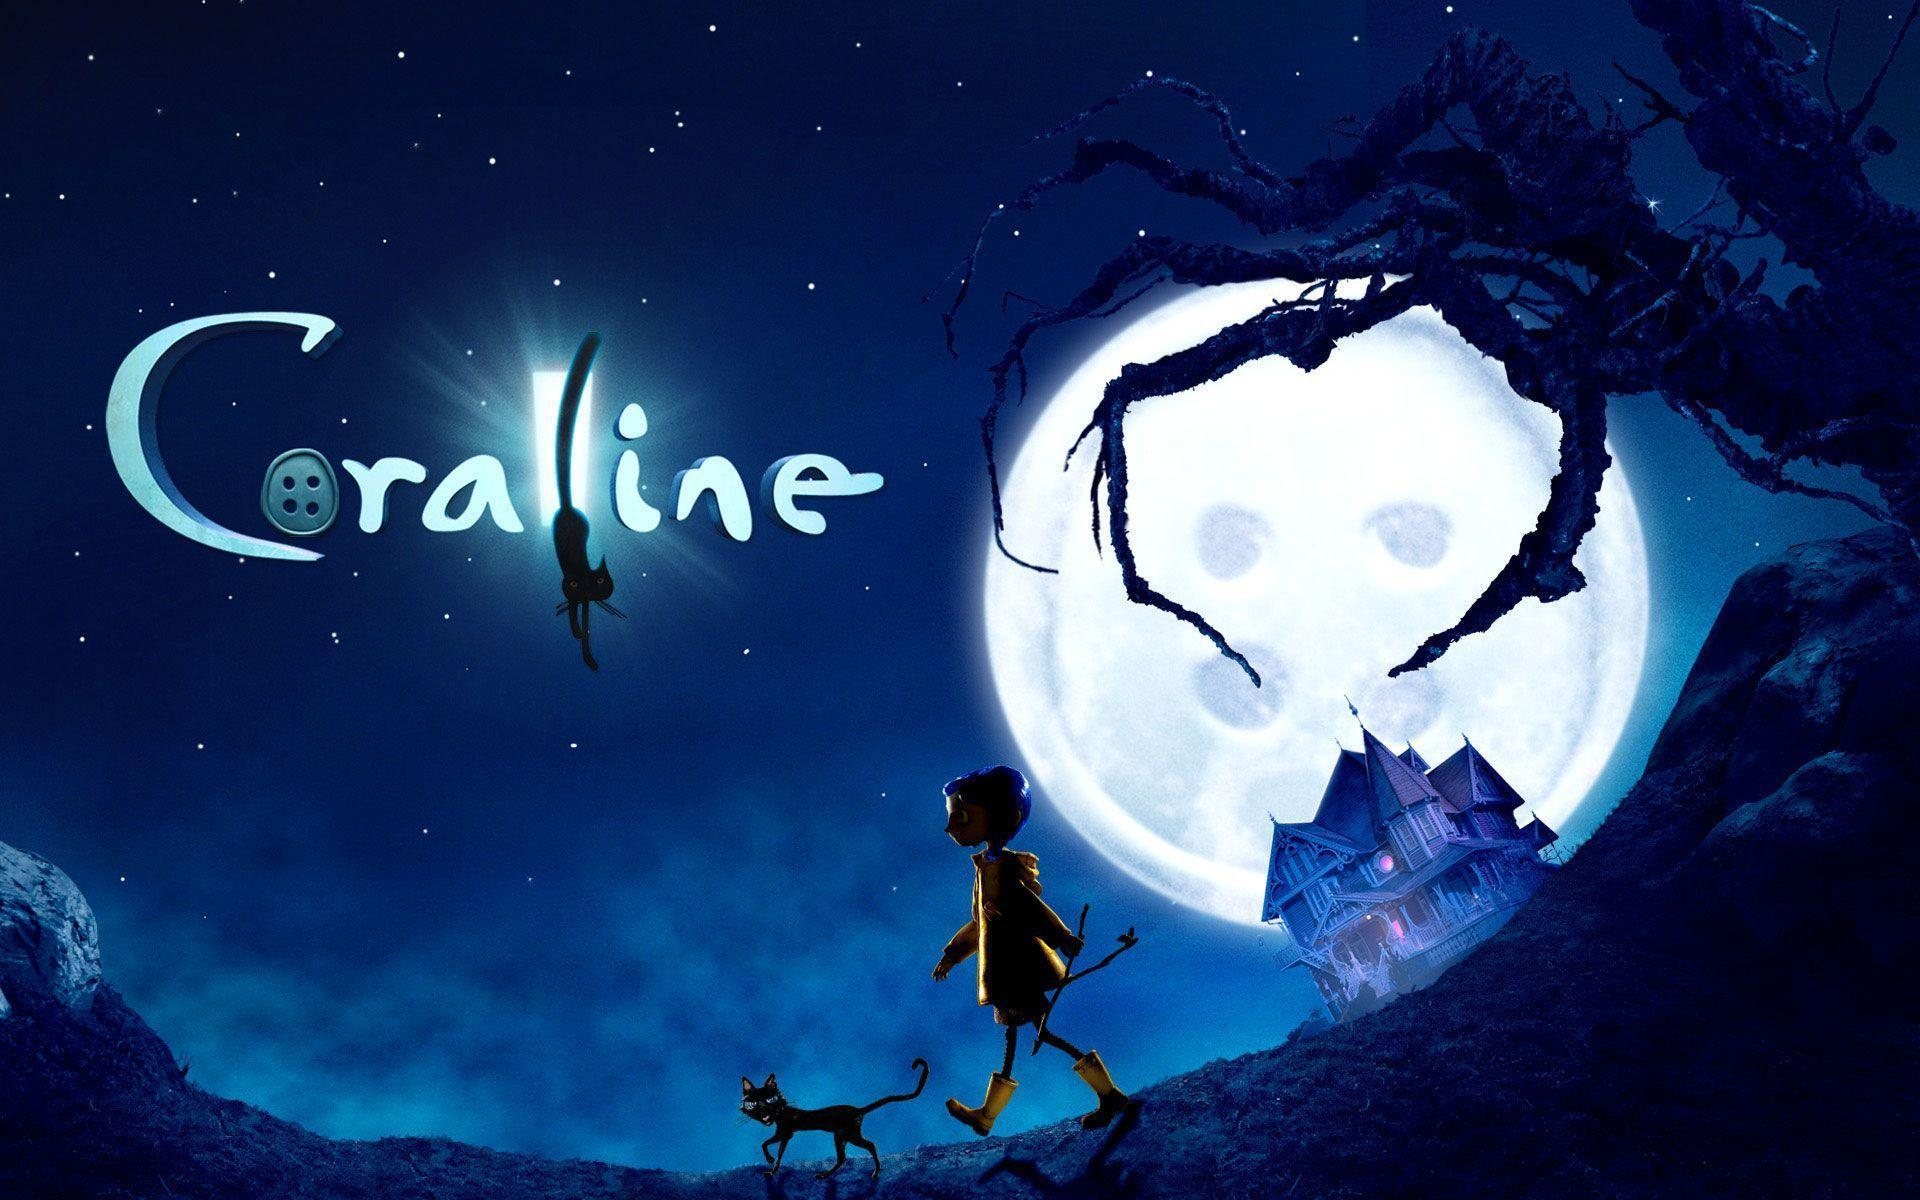 Coraline wallpapers wallpaper cave for Puerta wallpaper hd